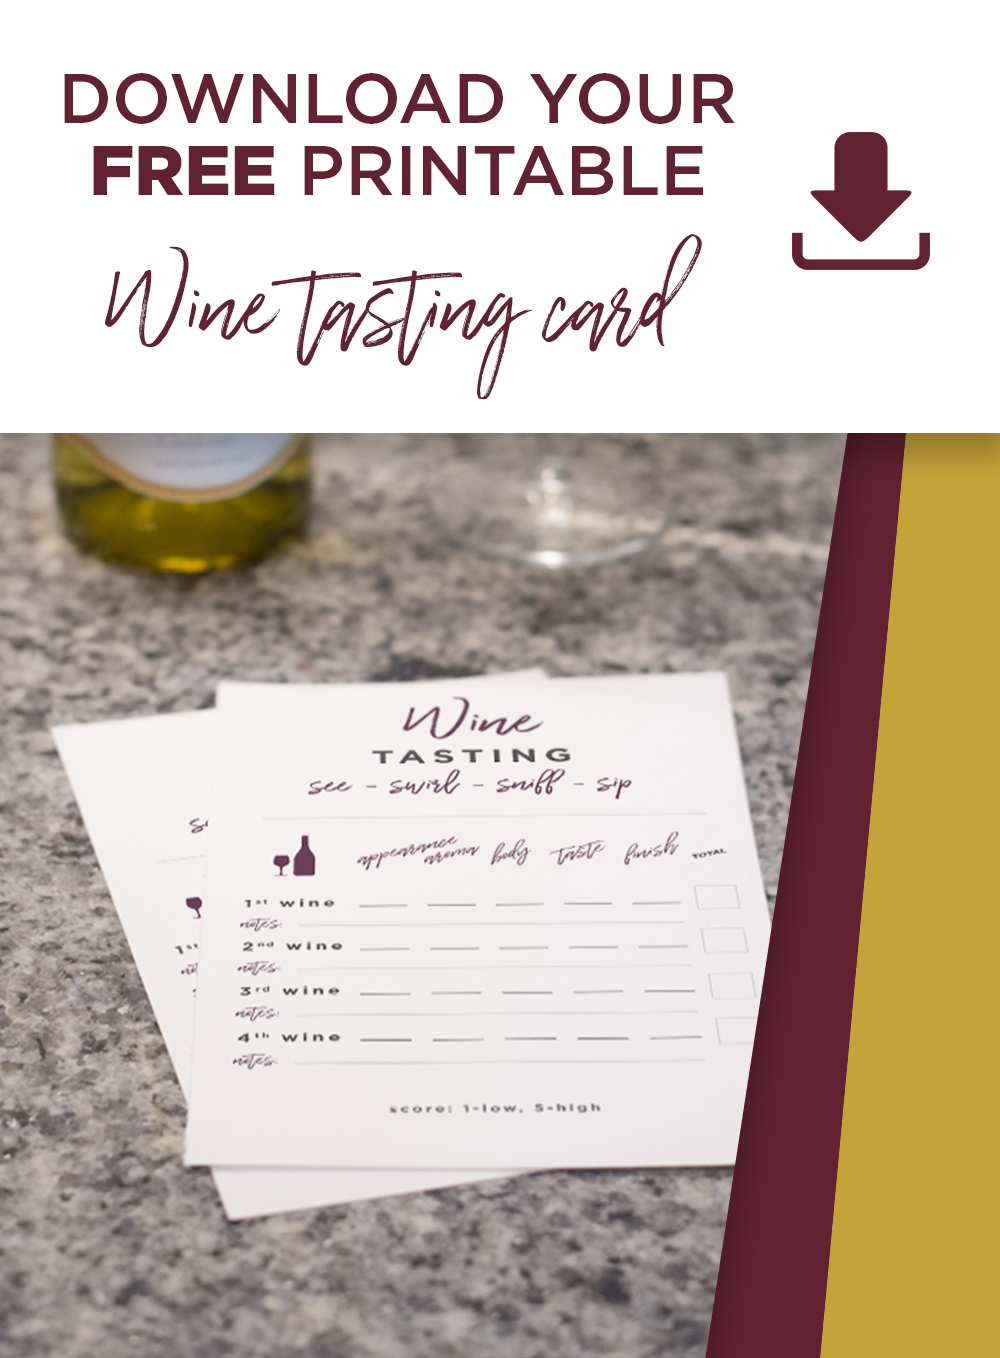 Download your own wine tasting printable card!